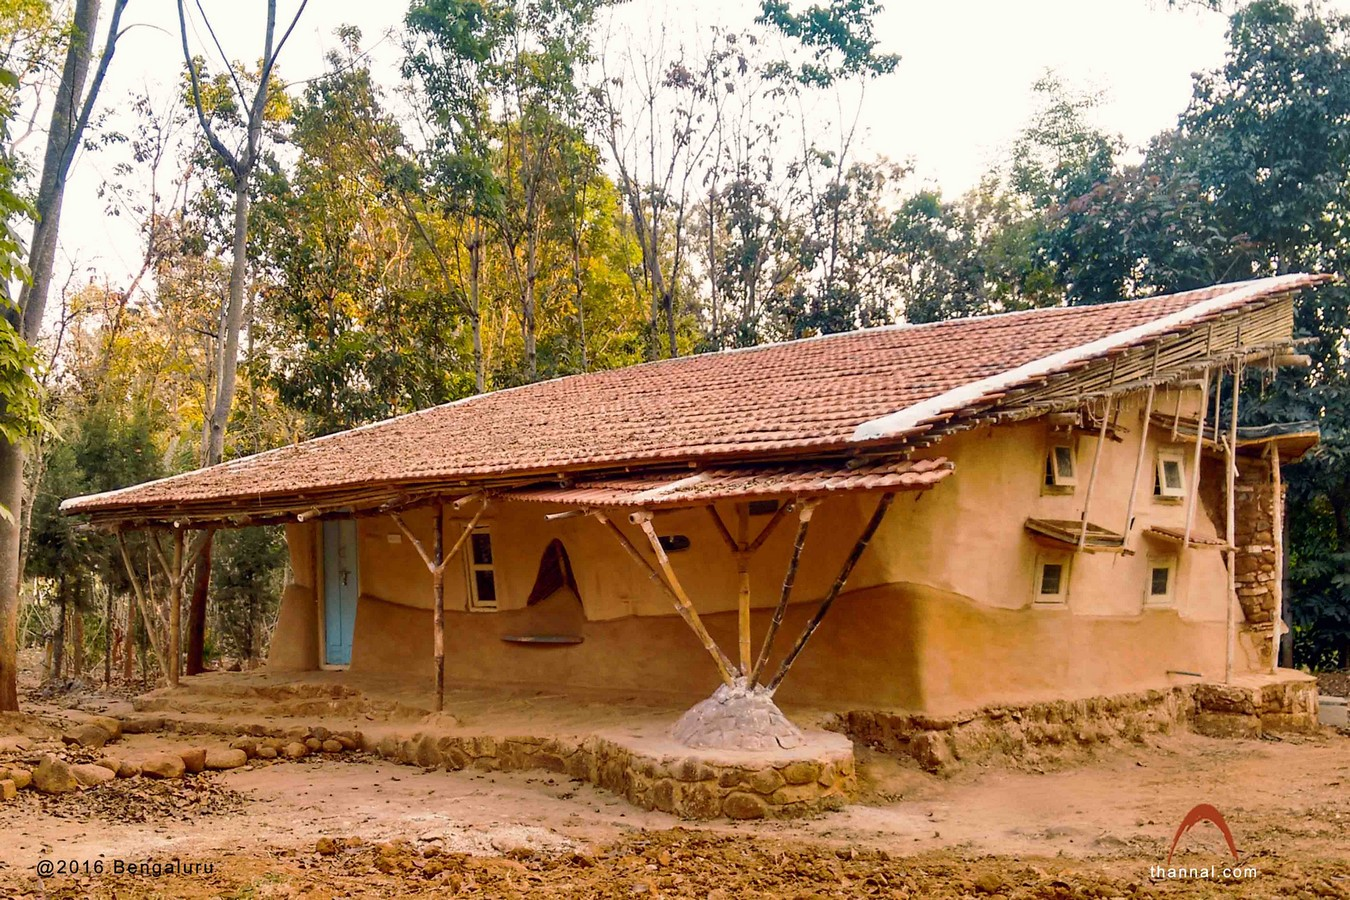 Sustainable construction techniques used in vernacular architecture - Sheet17